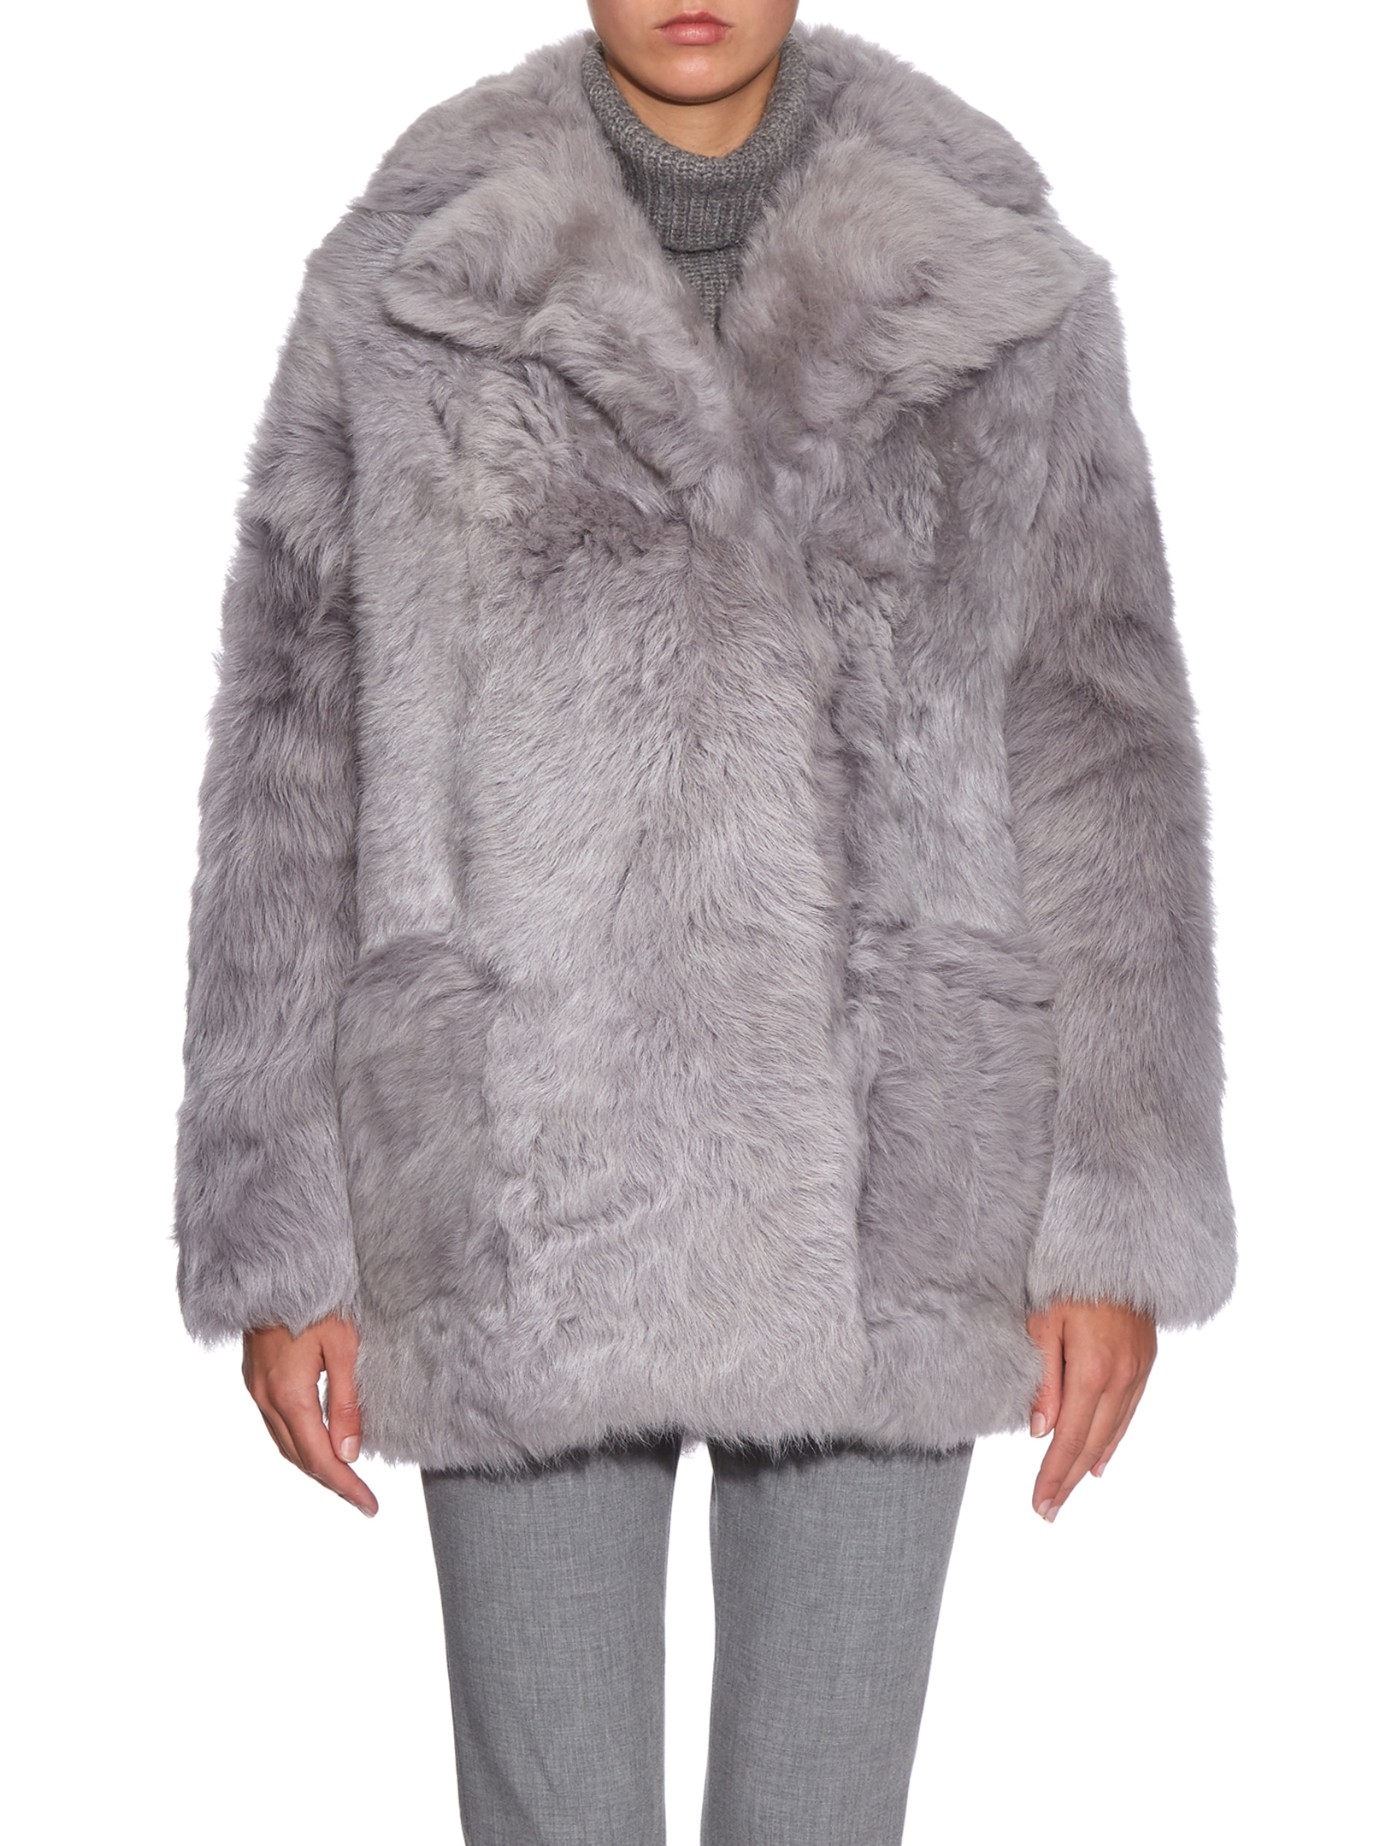 Tibi Toscana Shearling Coat in Gray | Lyst